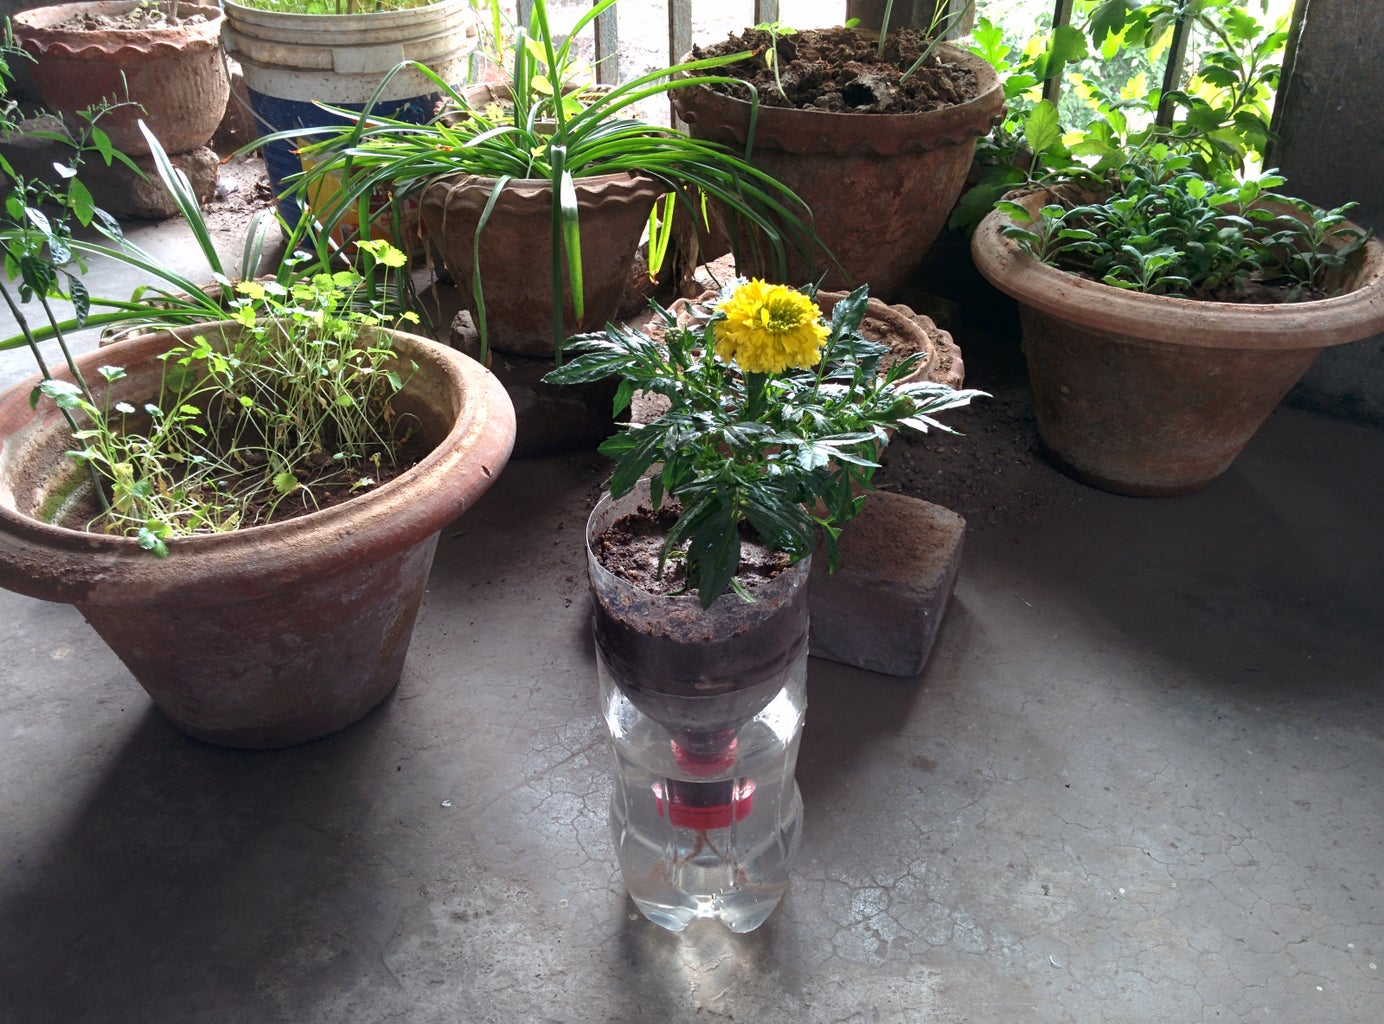 Recycled Bottle Self Watering Hydroponics